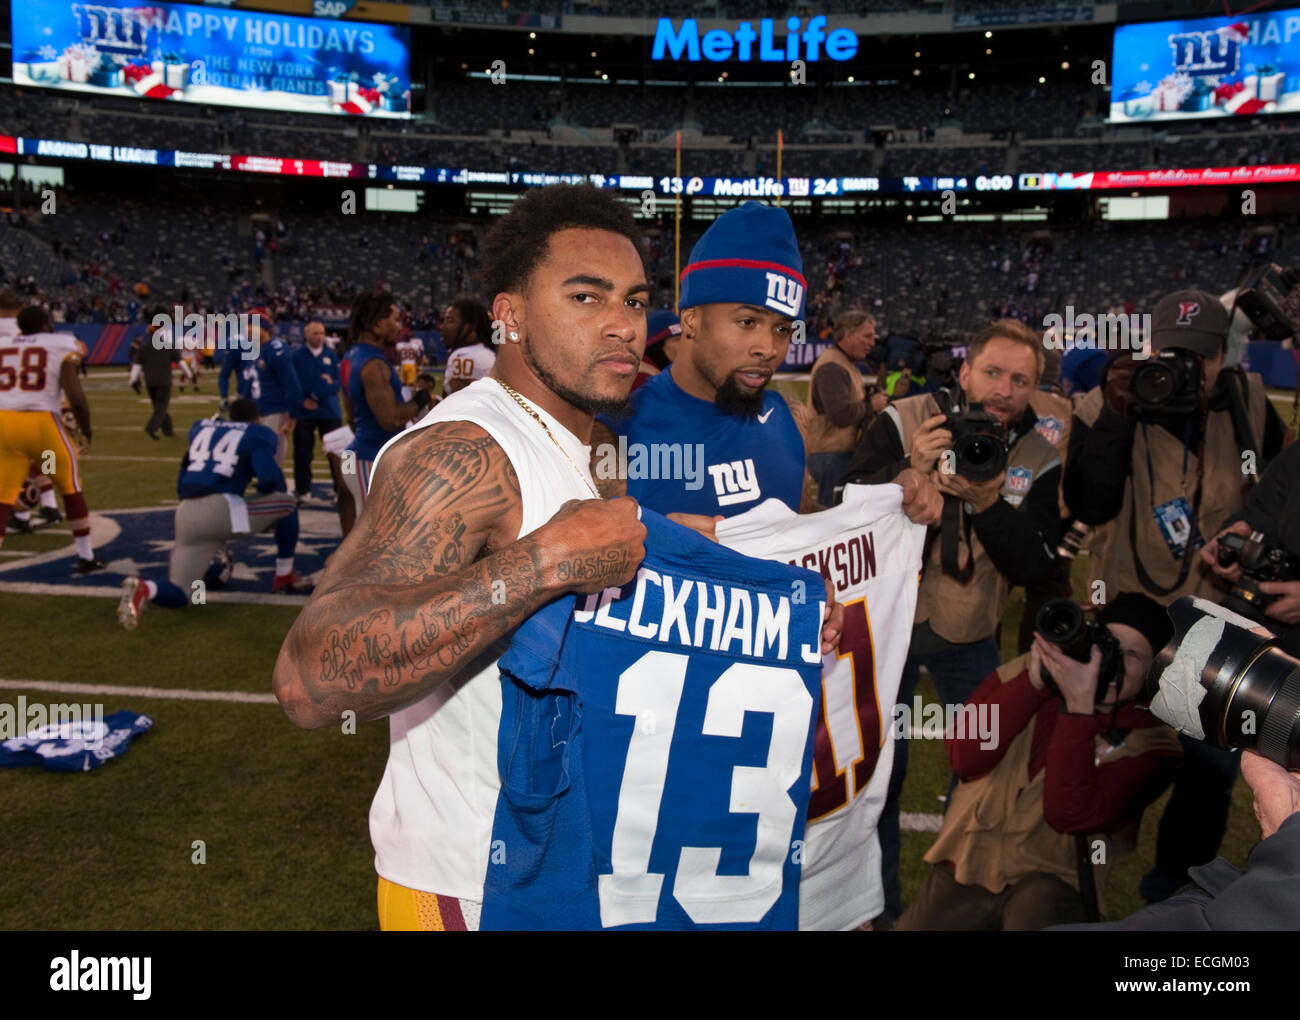 Nike authentic jerseys - East Rutherford, New Jersey, Usa. 14th Dec, 2014. Giants' Wide ...